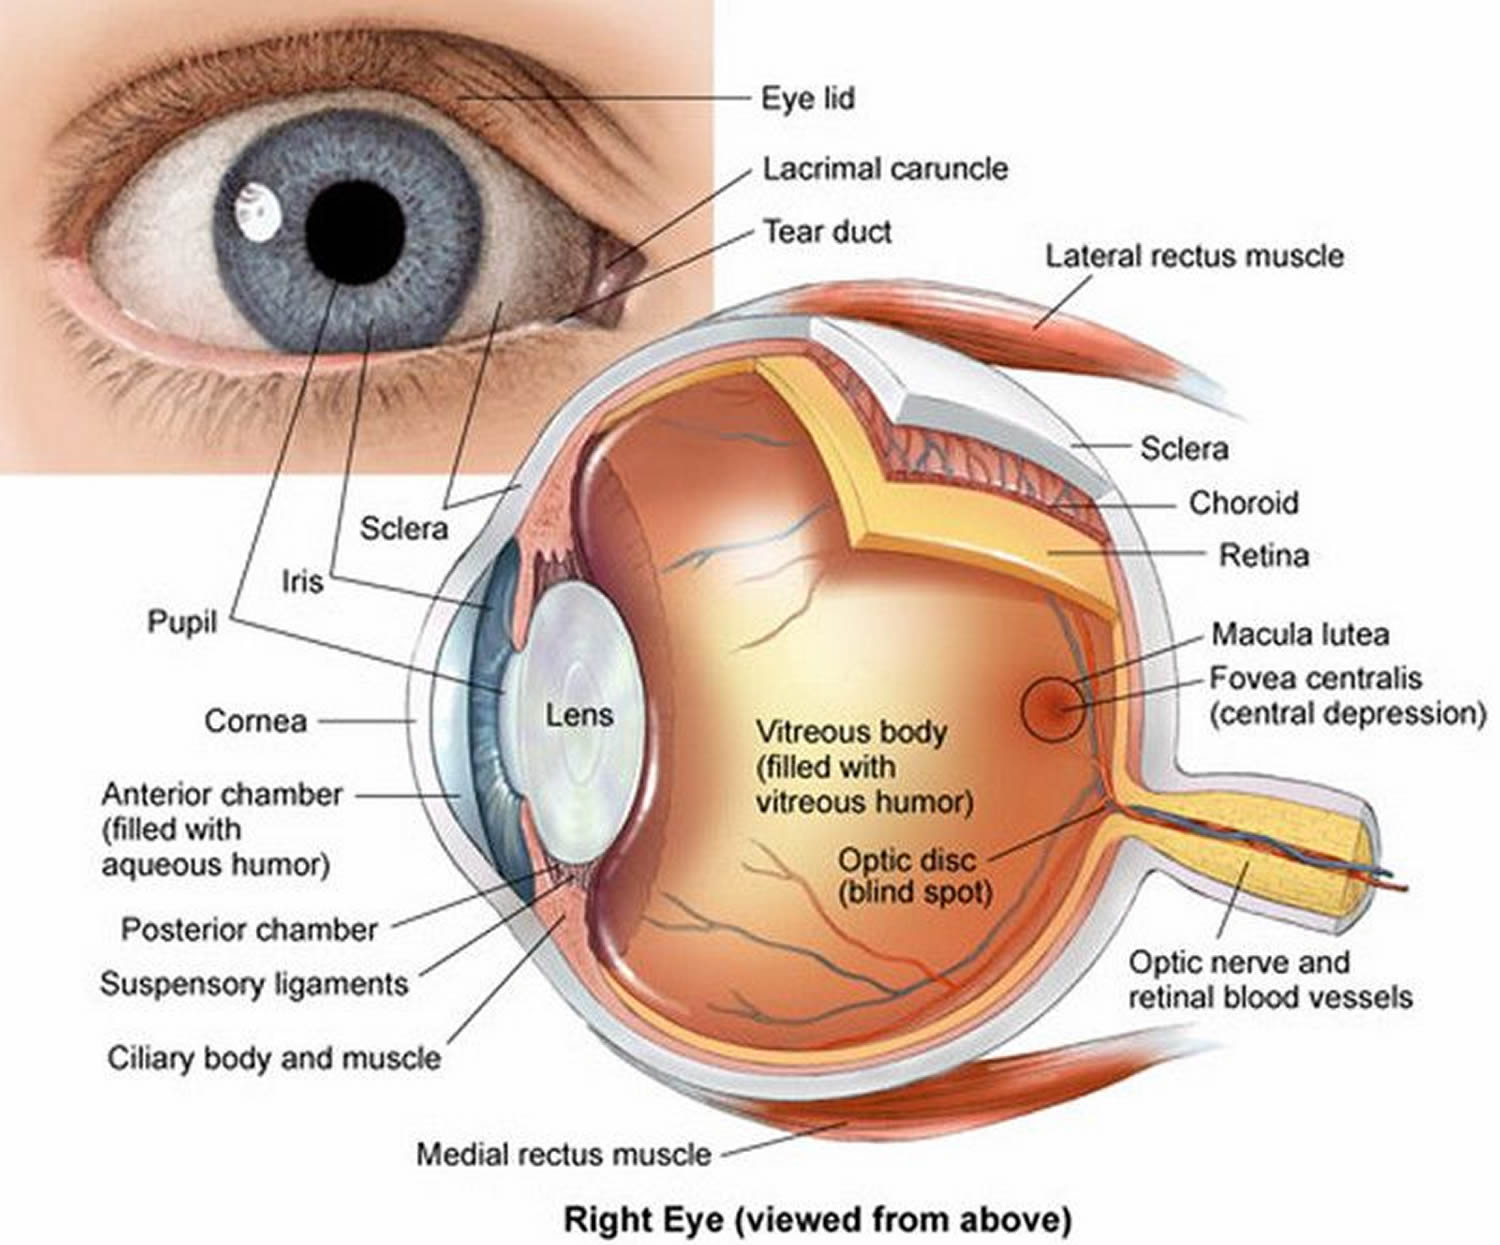 Human Eye Anatomy - Parts of the Eye and Structure of the Human Eye